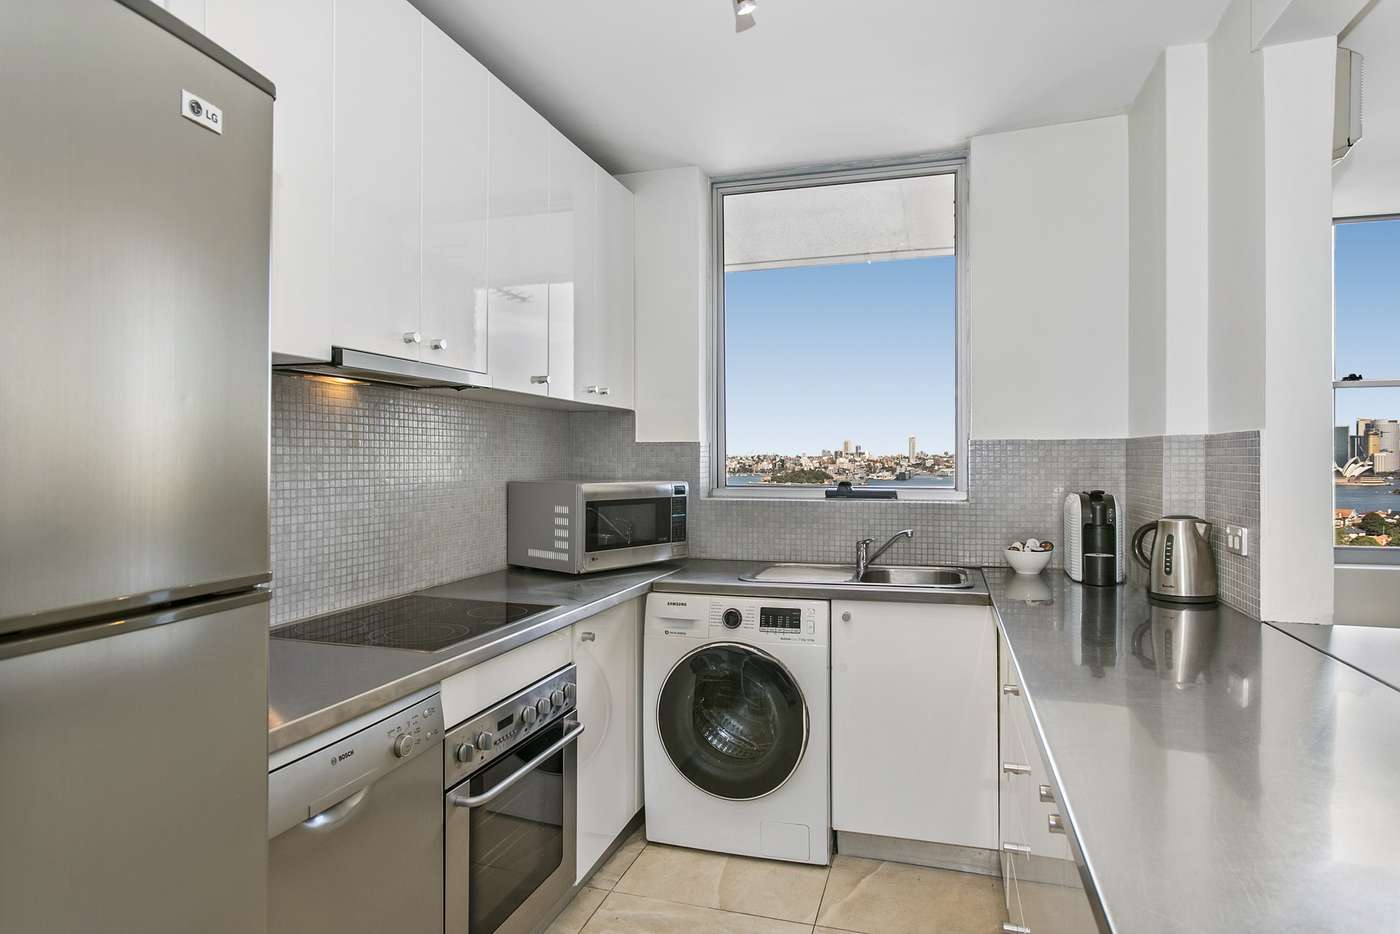 Sixth view of Homely apartment listing, 81/43 Musgrave Street, Mosman NSW 2088